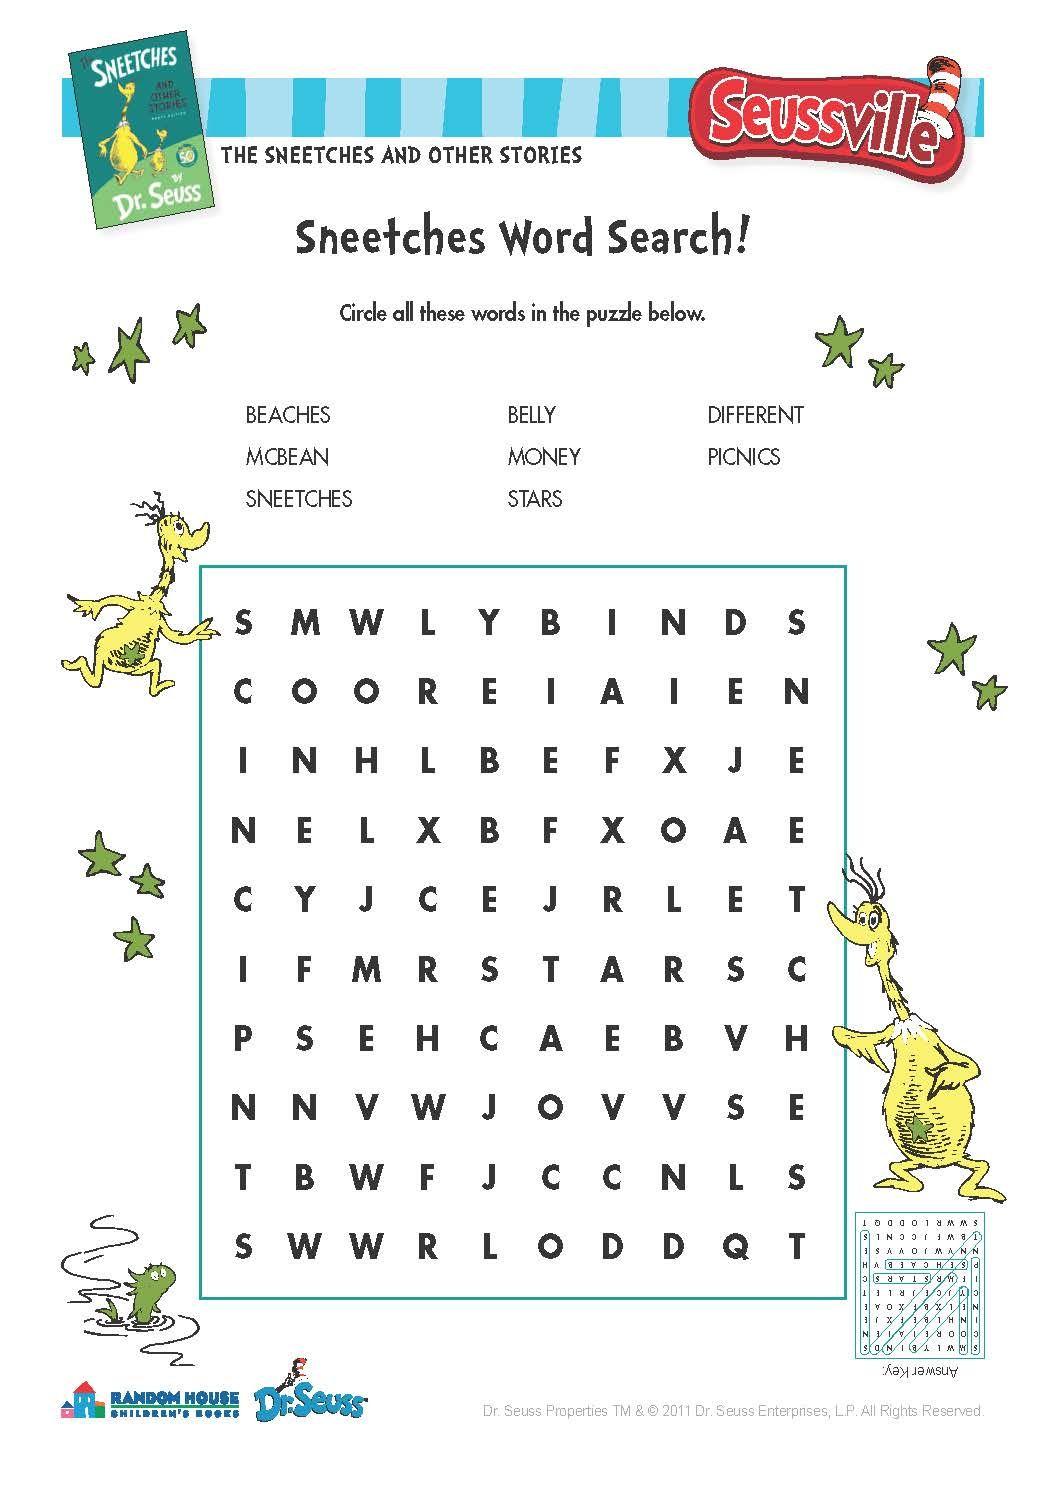 The Sneetches Word Search Seussville Drseuss Printables Downloadable Puzzle Wordsearch Literacy Sneetches Dr Seuss Activities Guidance Lesson Plans